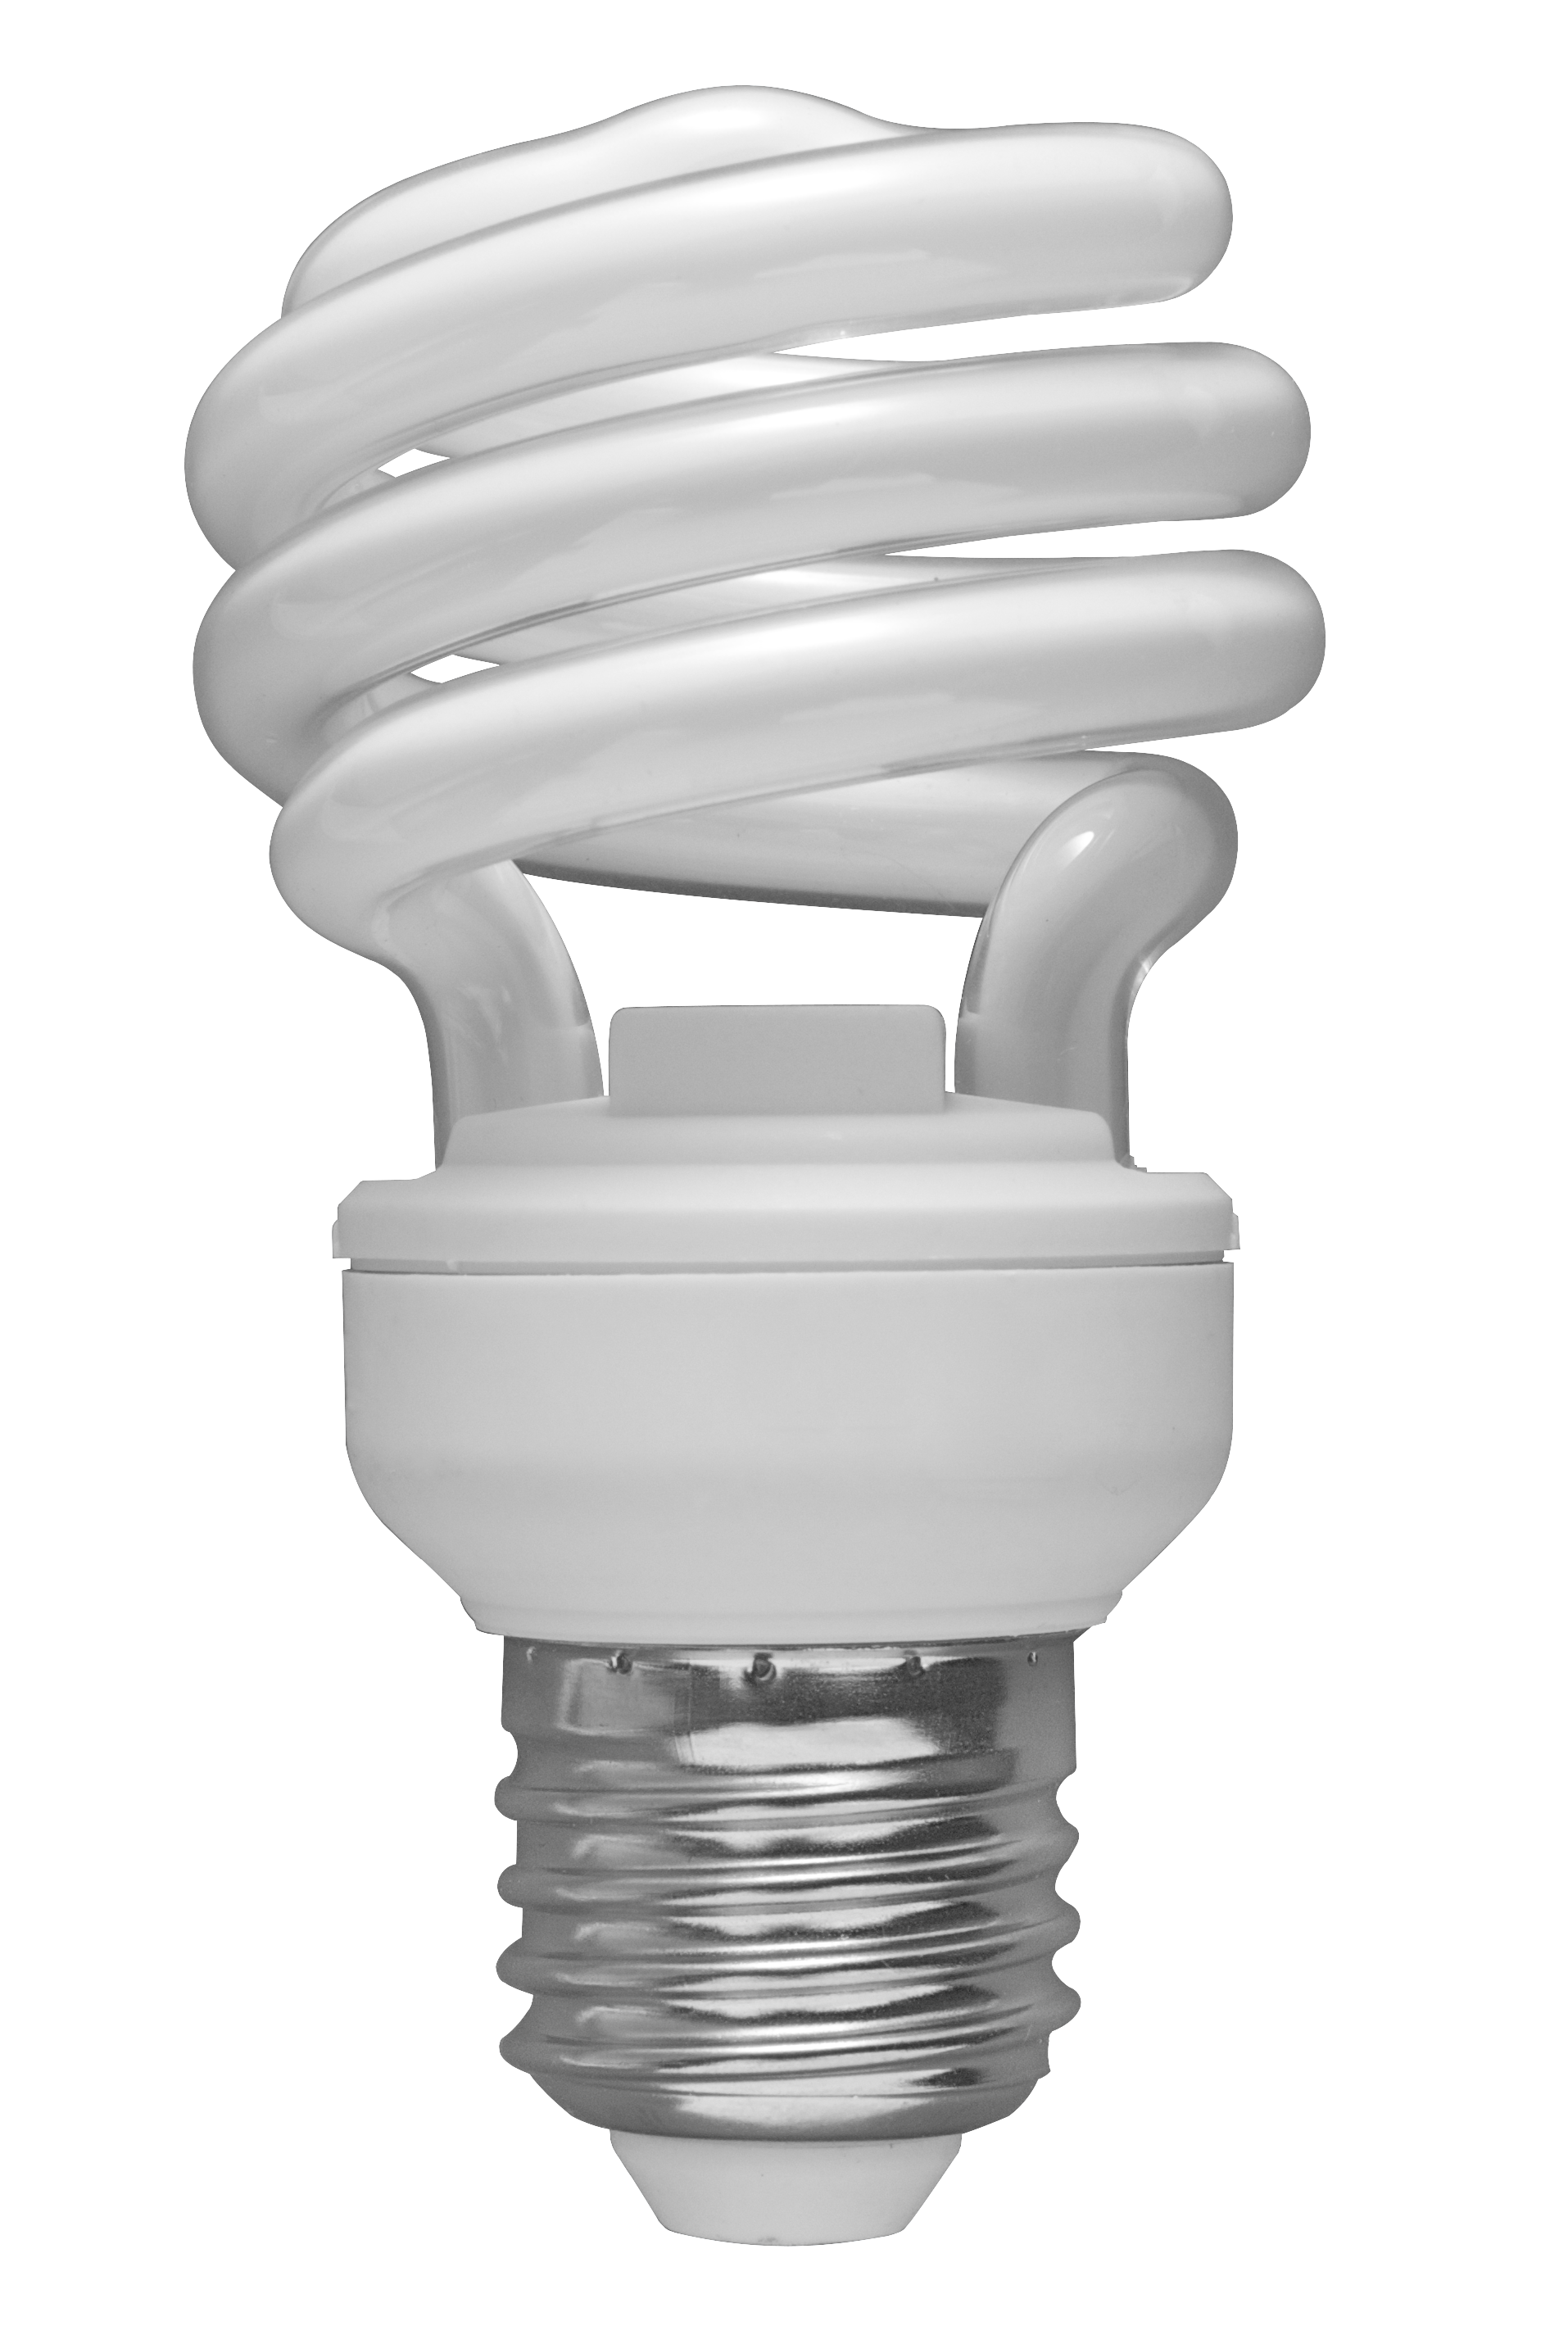 File:01 Spiral CFL Bulb 2010-03-08 (transparent back). - Light Bulb PNG HD